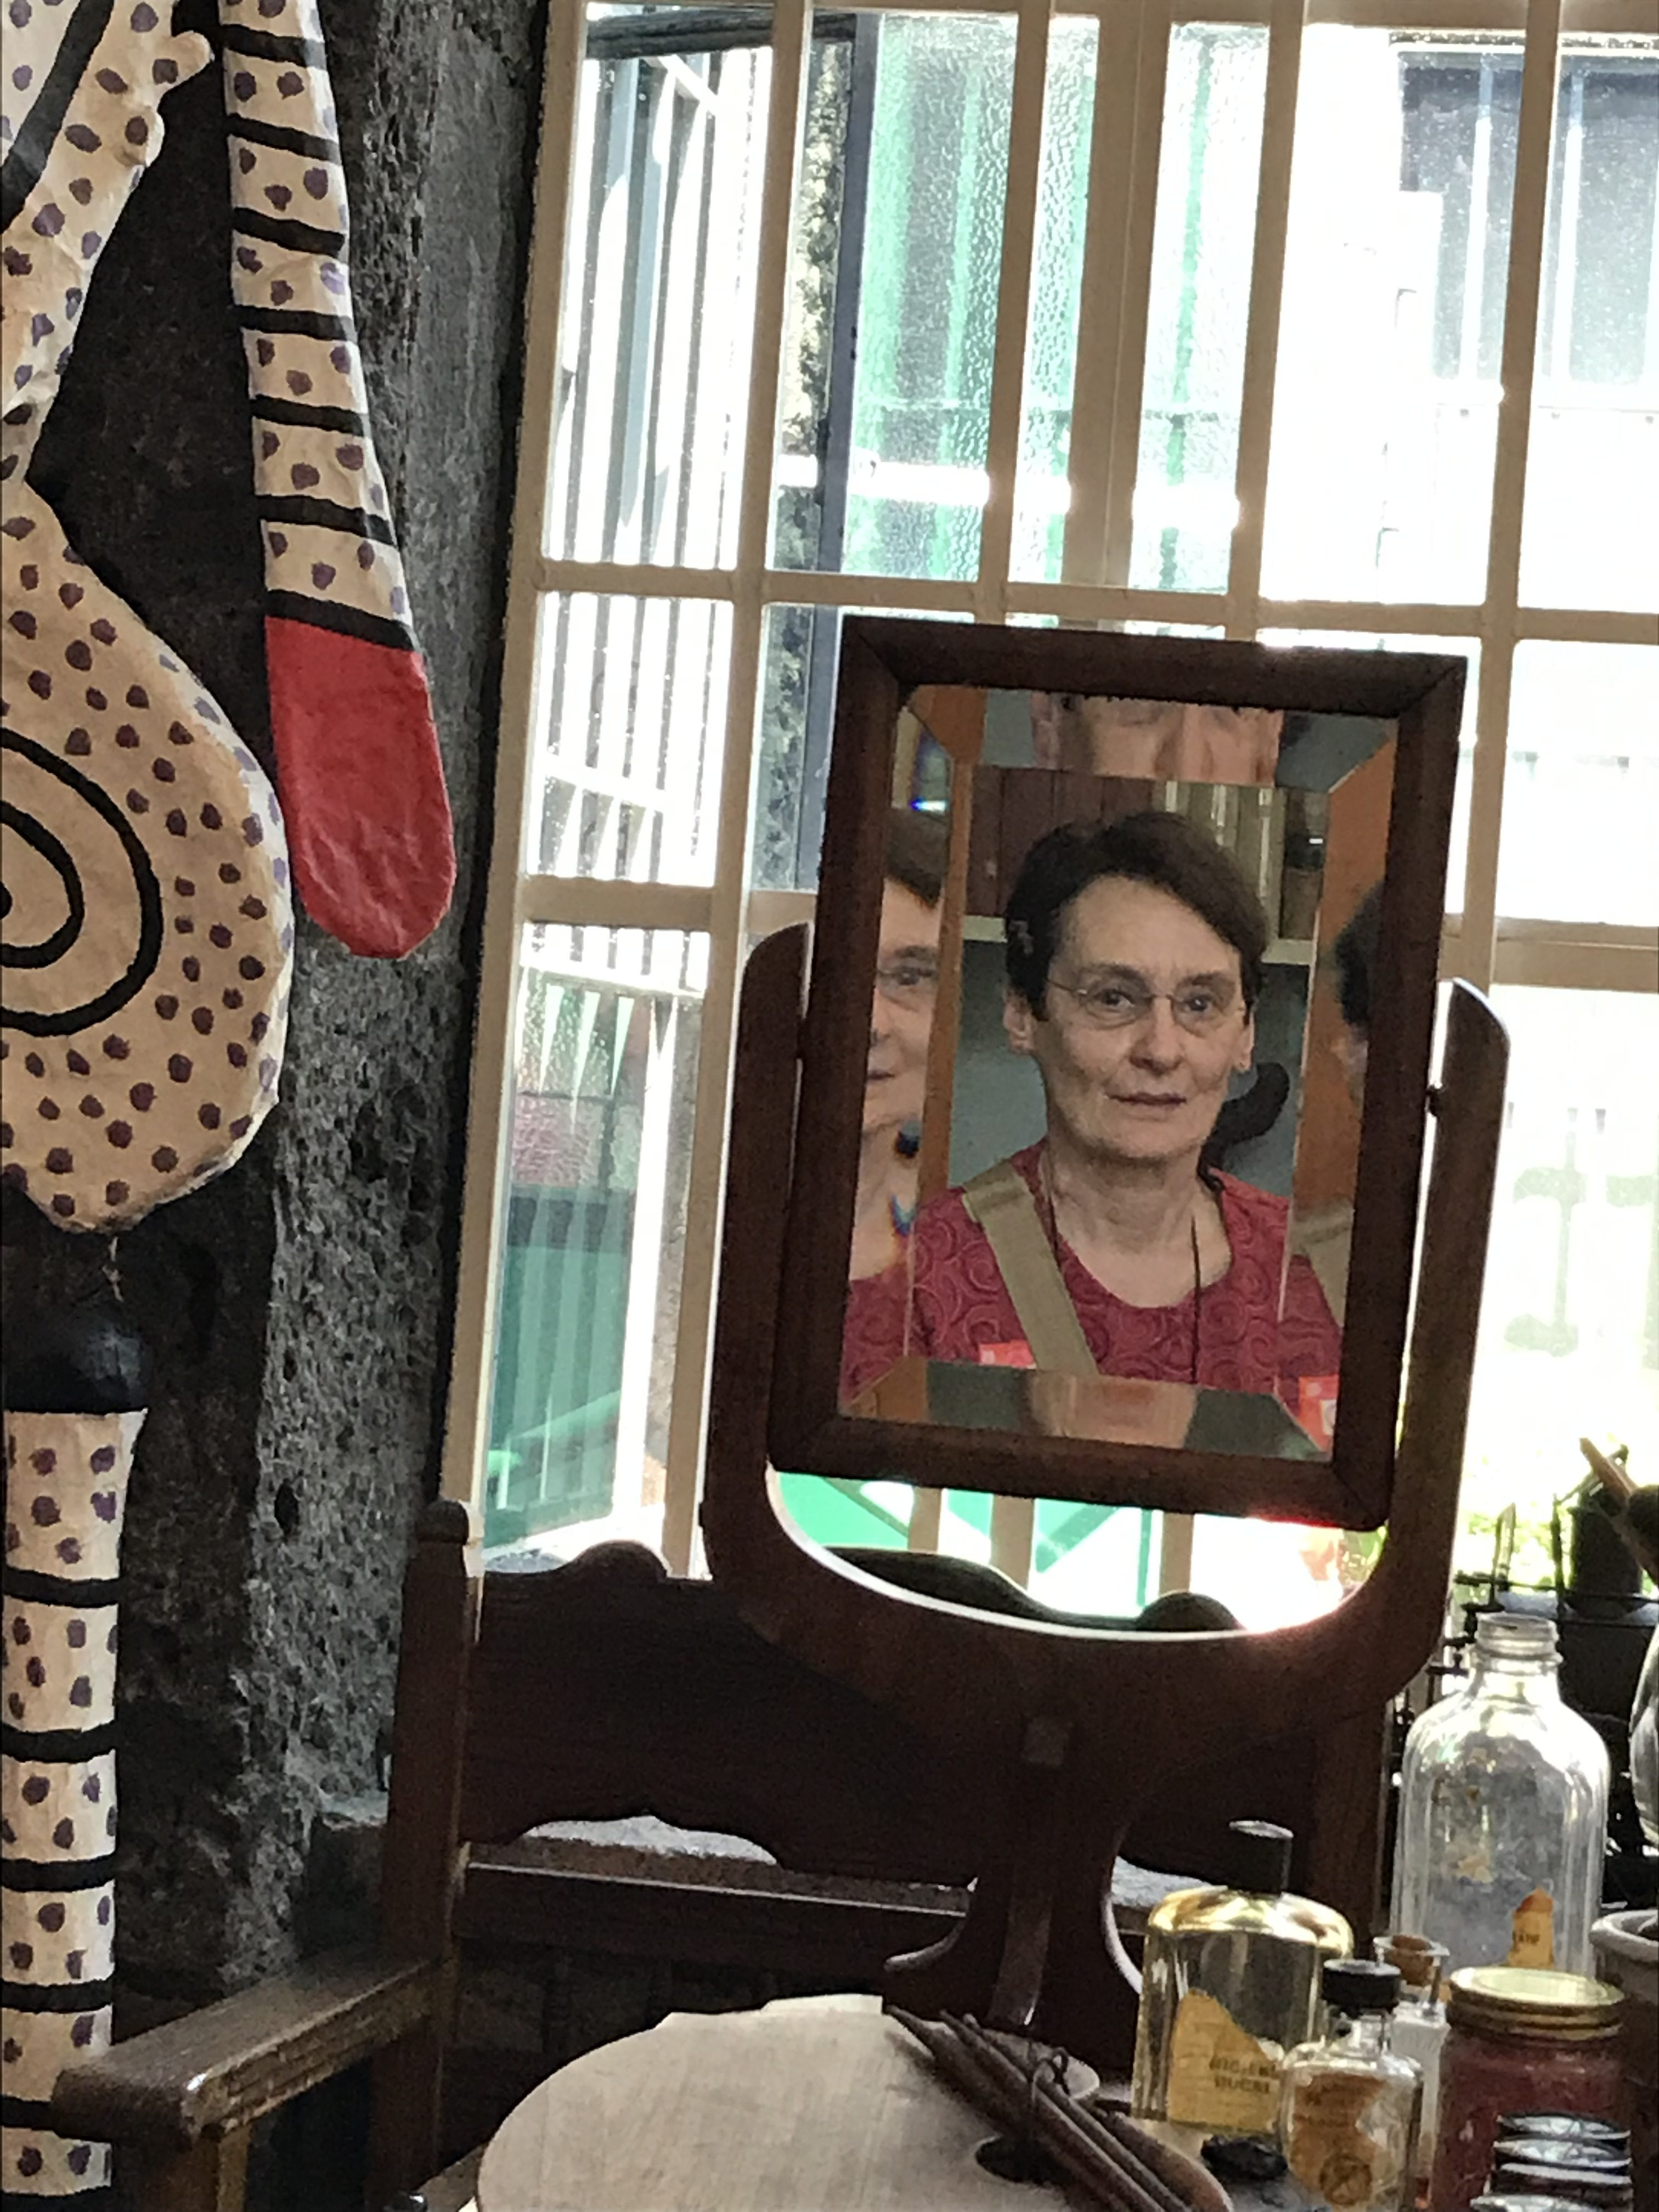 Jan Kurtz image being reflected back out of Frida Kahlo's personal mirror